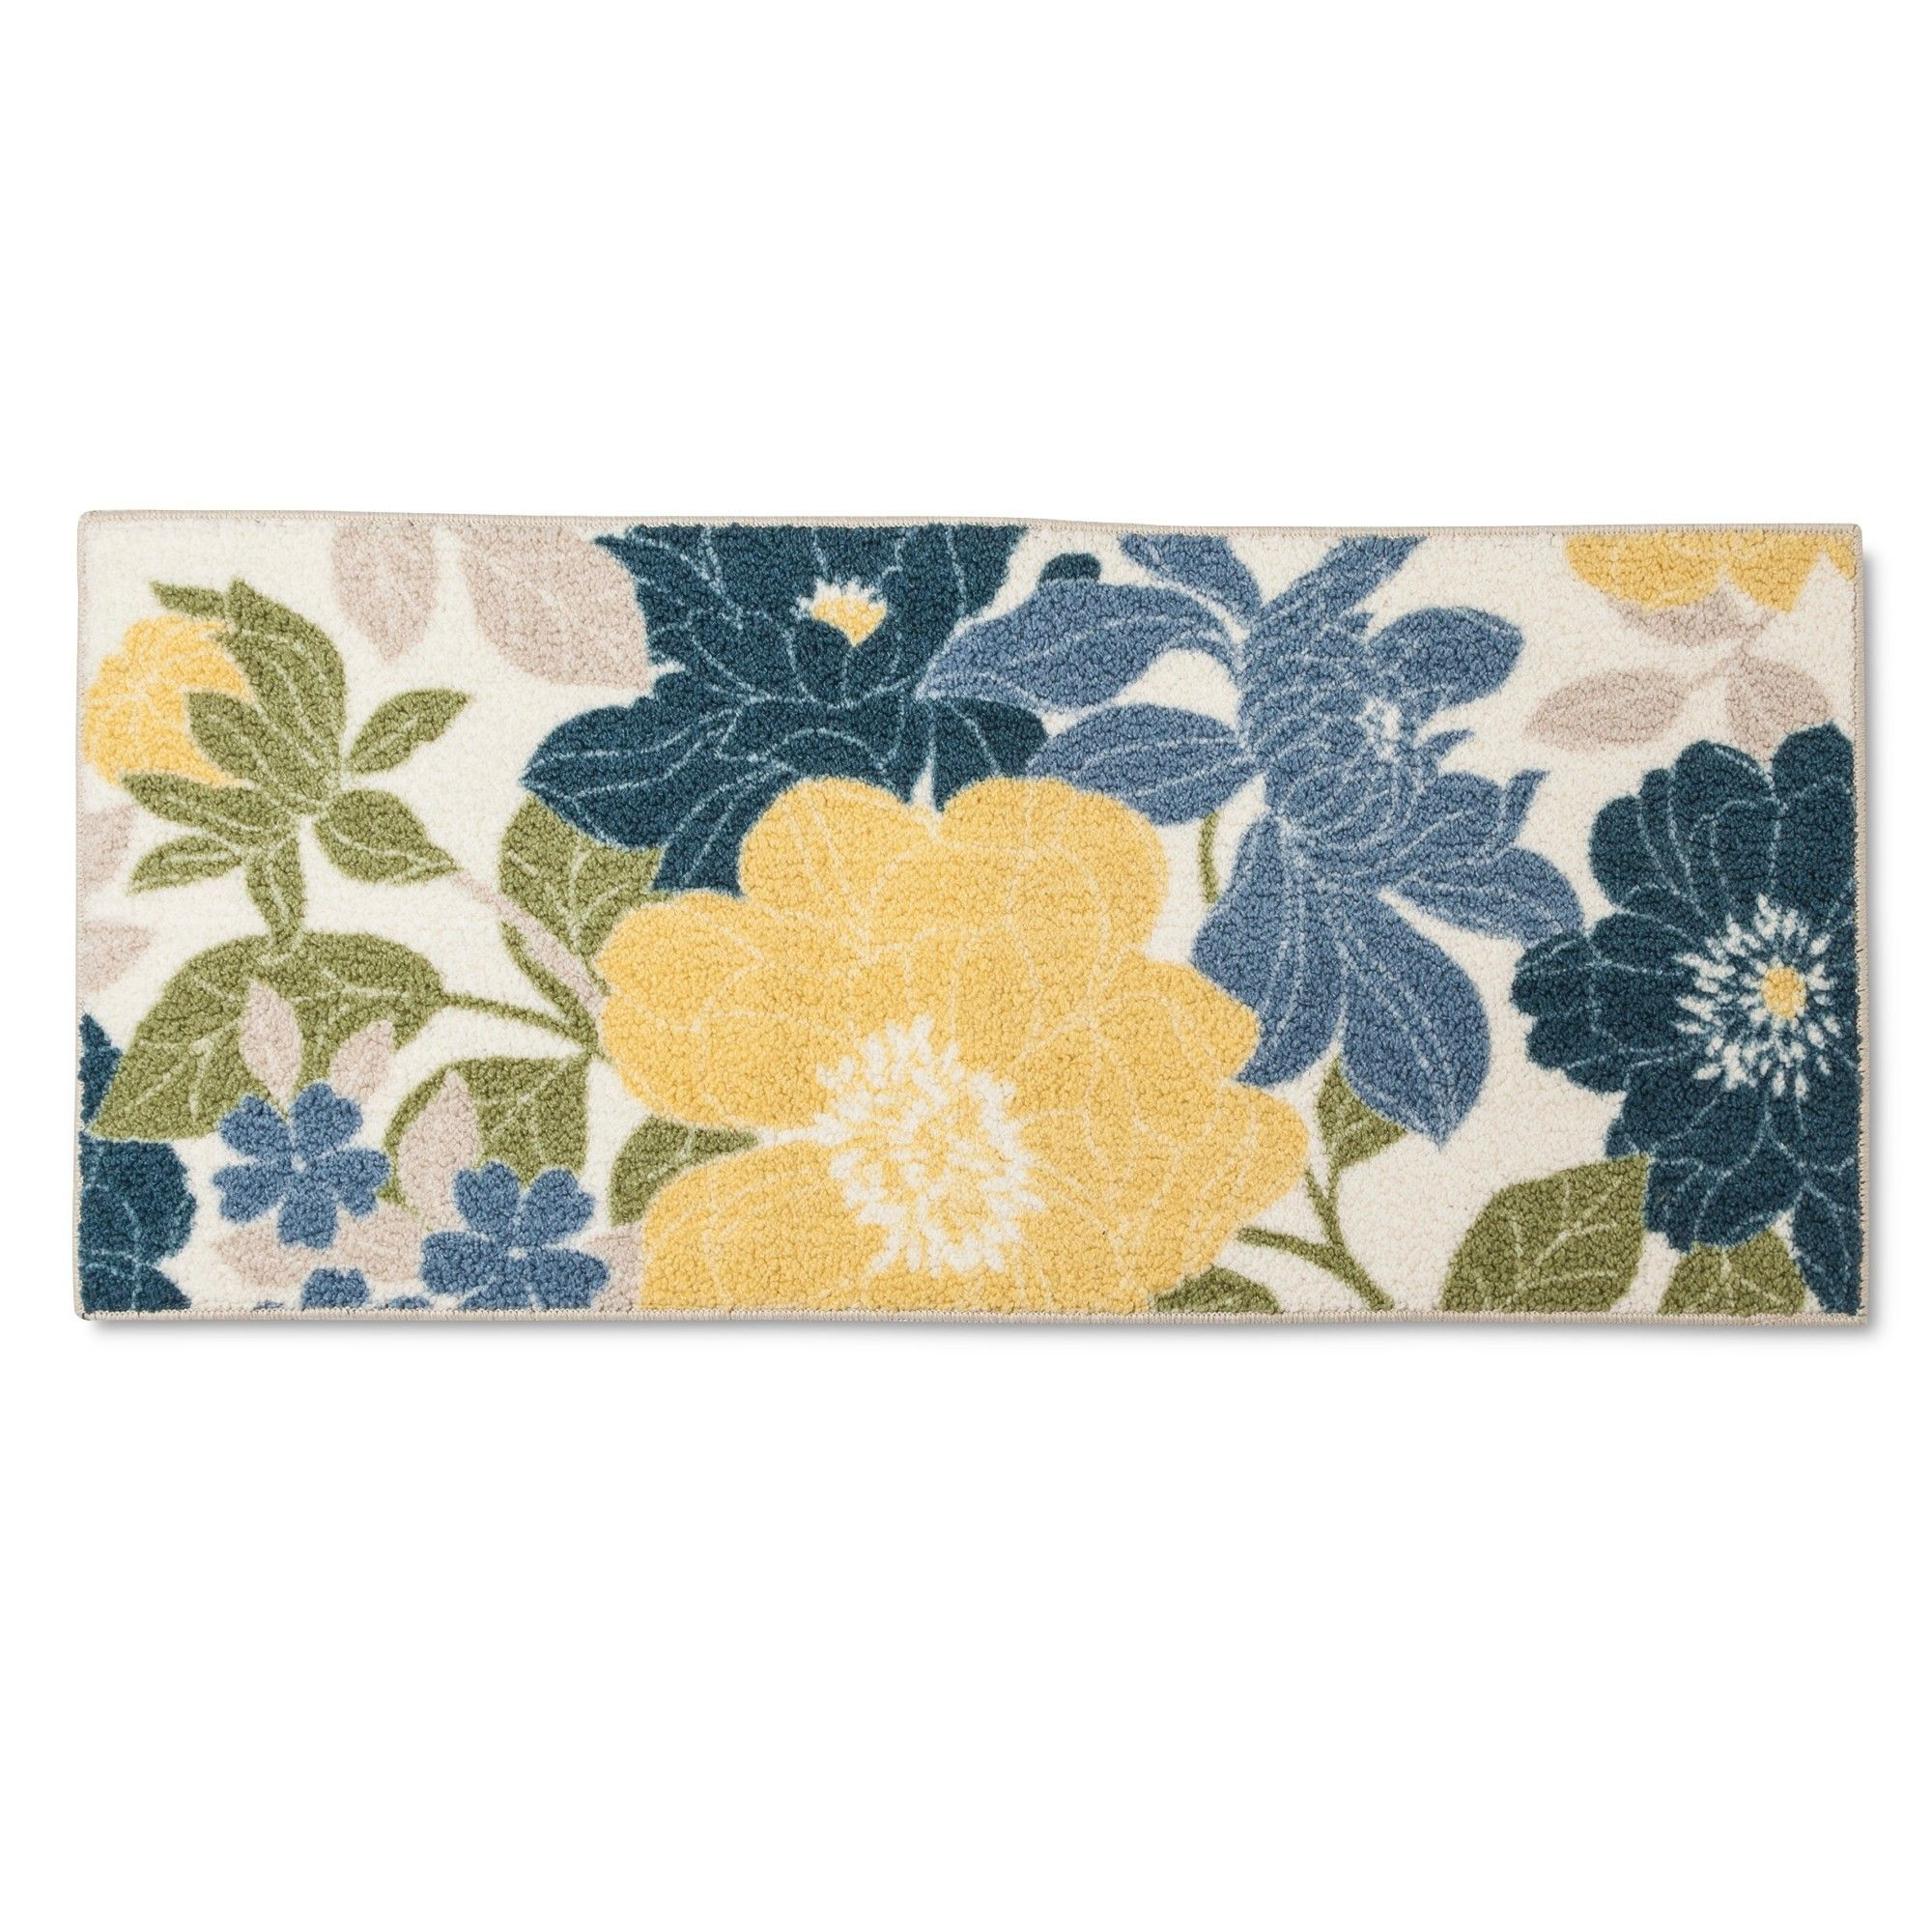 Floral Blue Accent Kitchen Rug 20 X 45 Threshold Floral Area